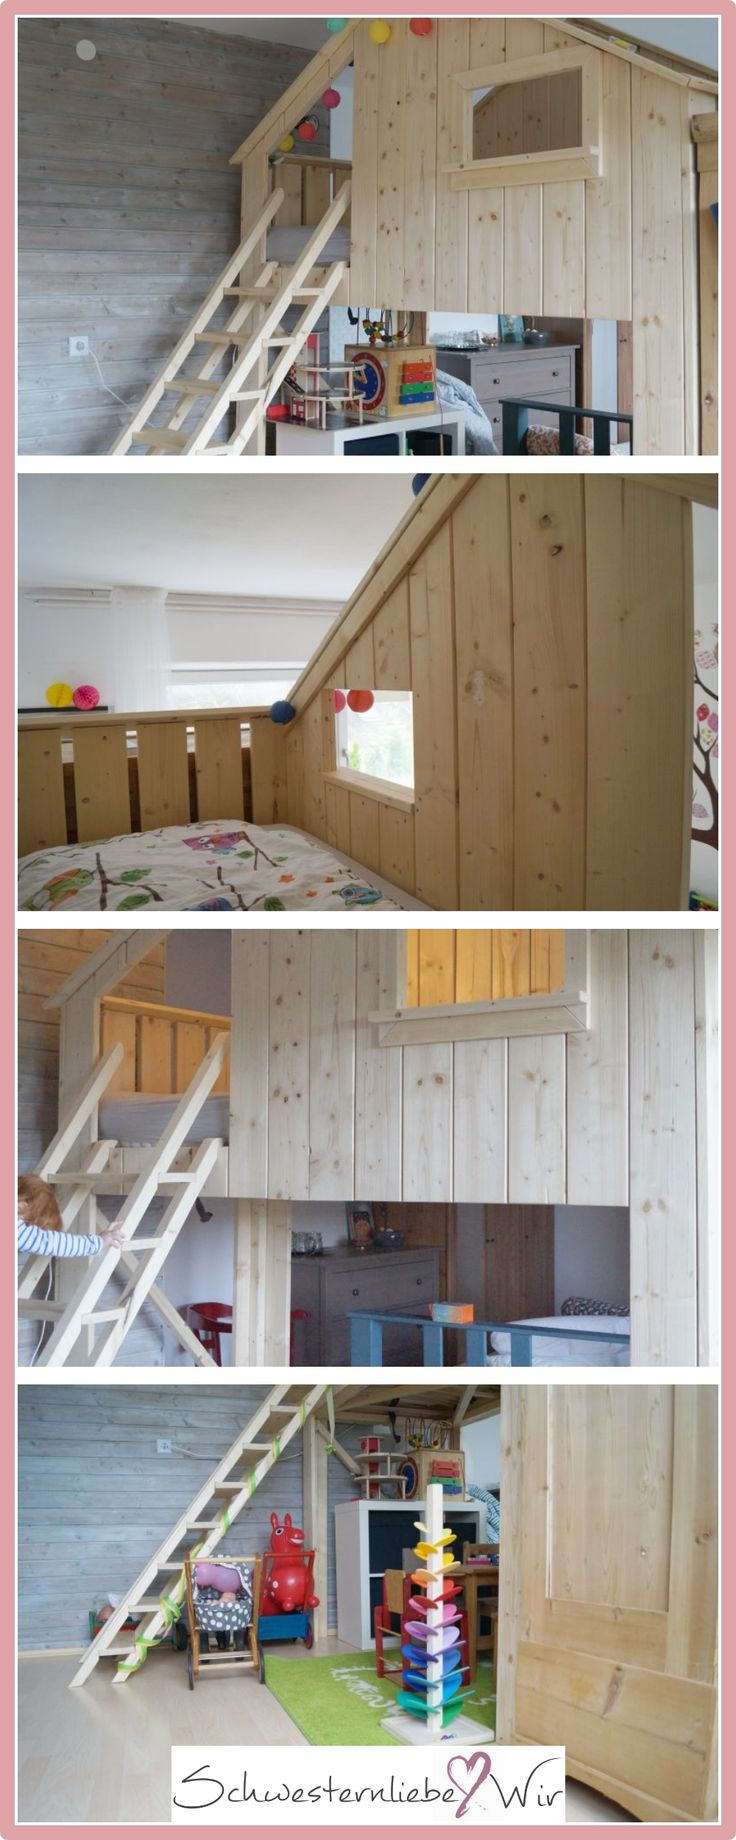 139 best kinderzimmer einrichten und diy ideen images on pinterest bedroom kids babies. Black Bedroom Furniture Sets. Home Design Ideas